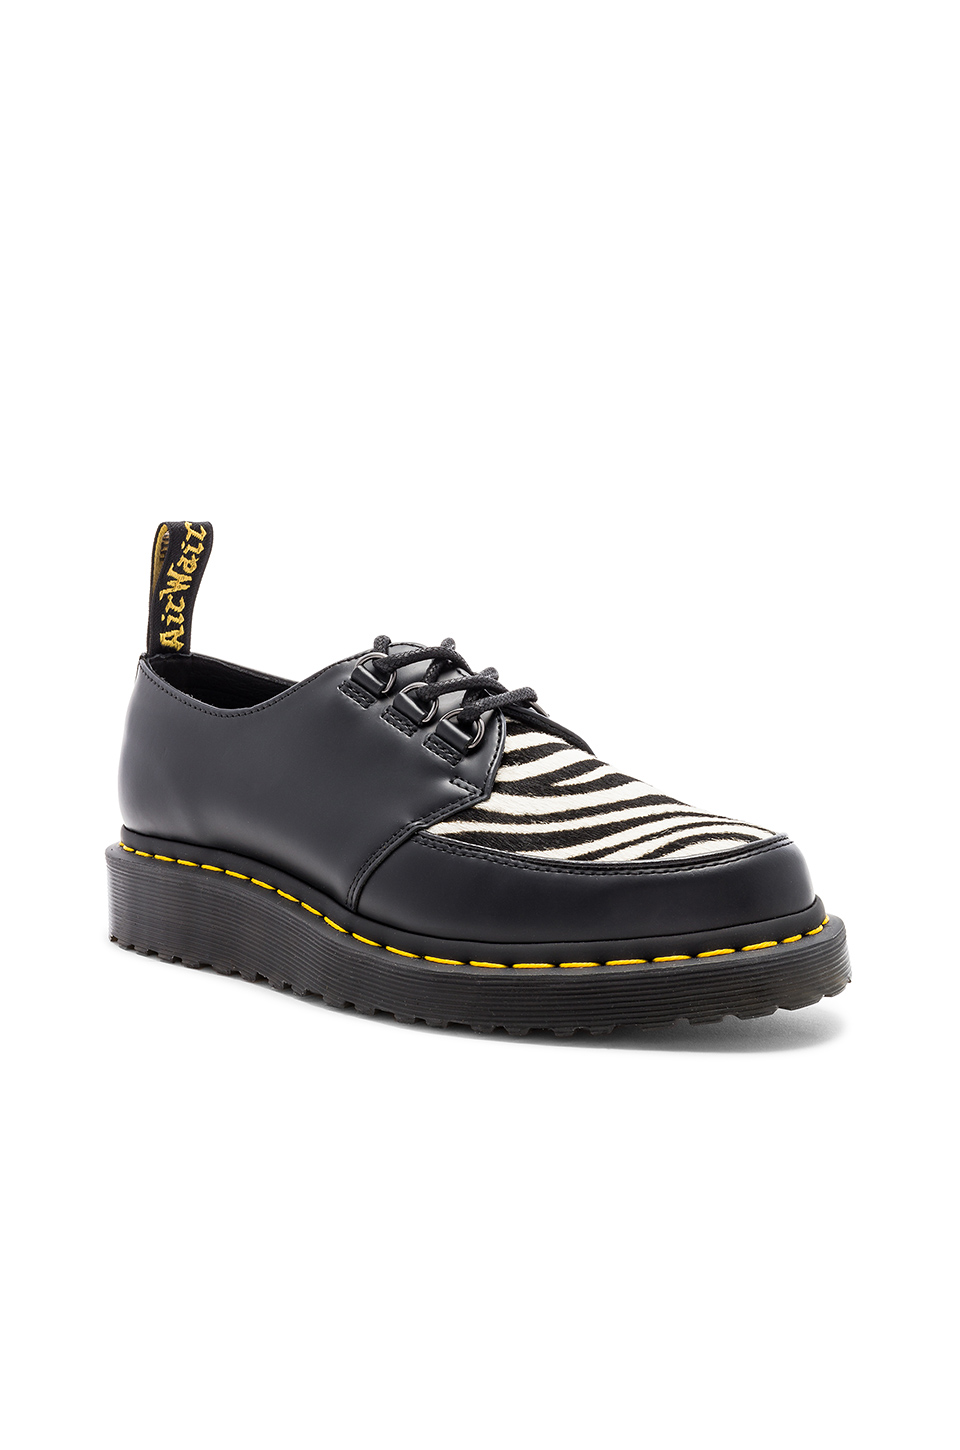 Dr. Martens Ramsey Zeb with Faux Fur Zebra Panel in Black & Zebra